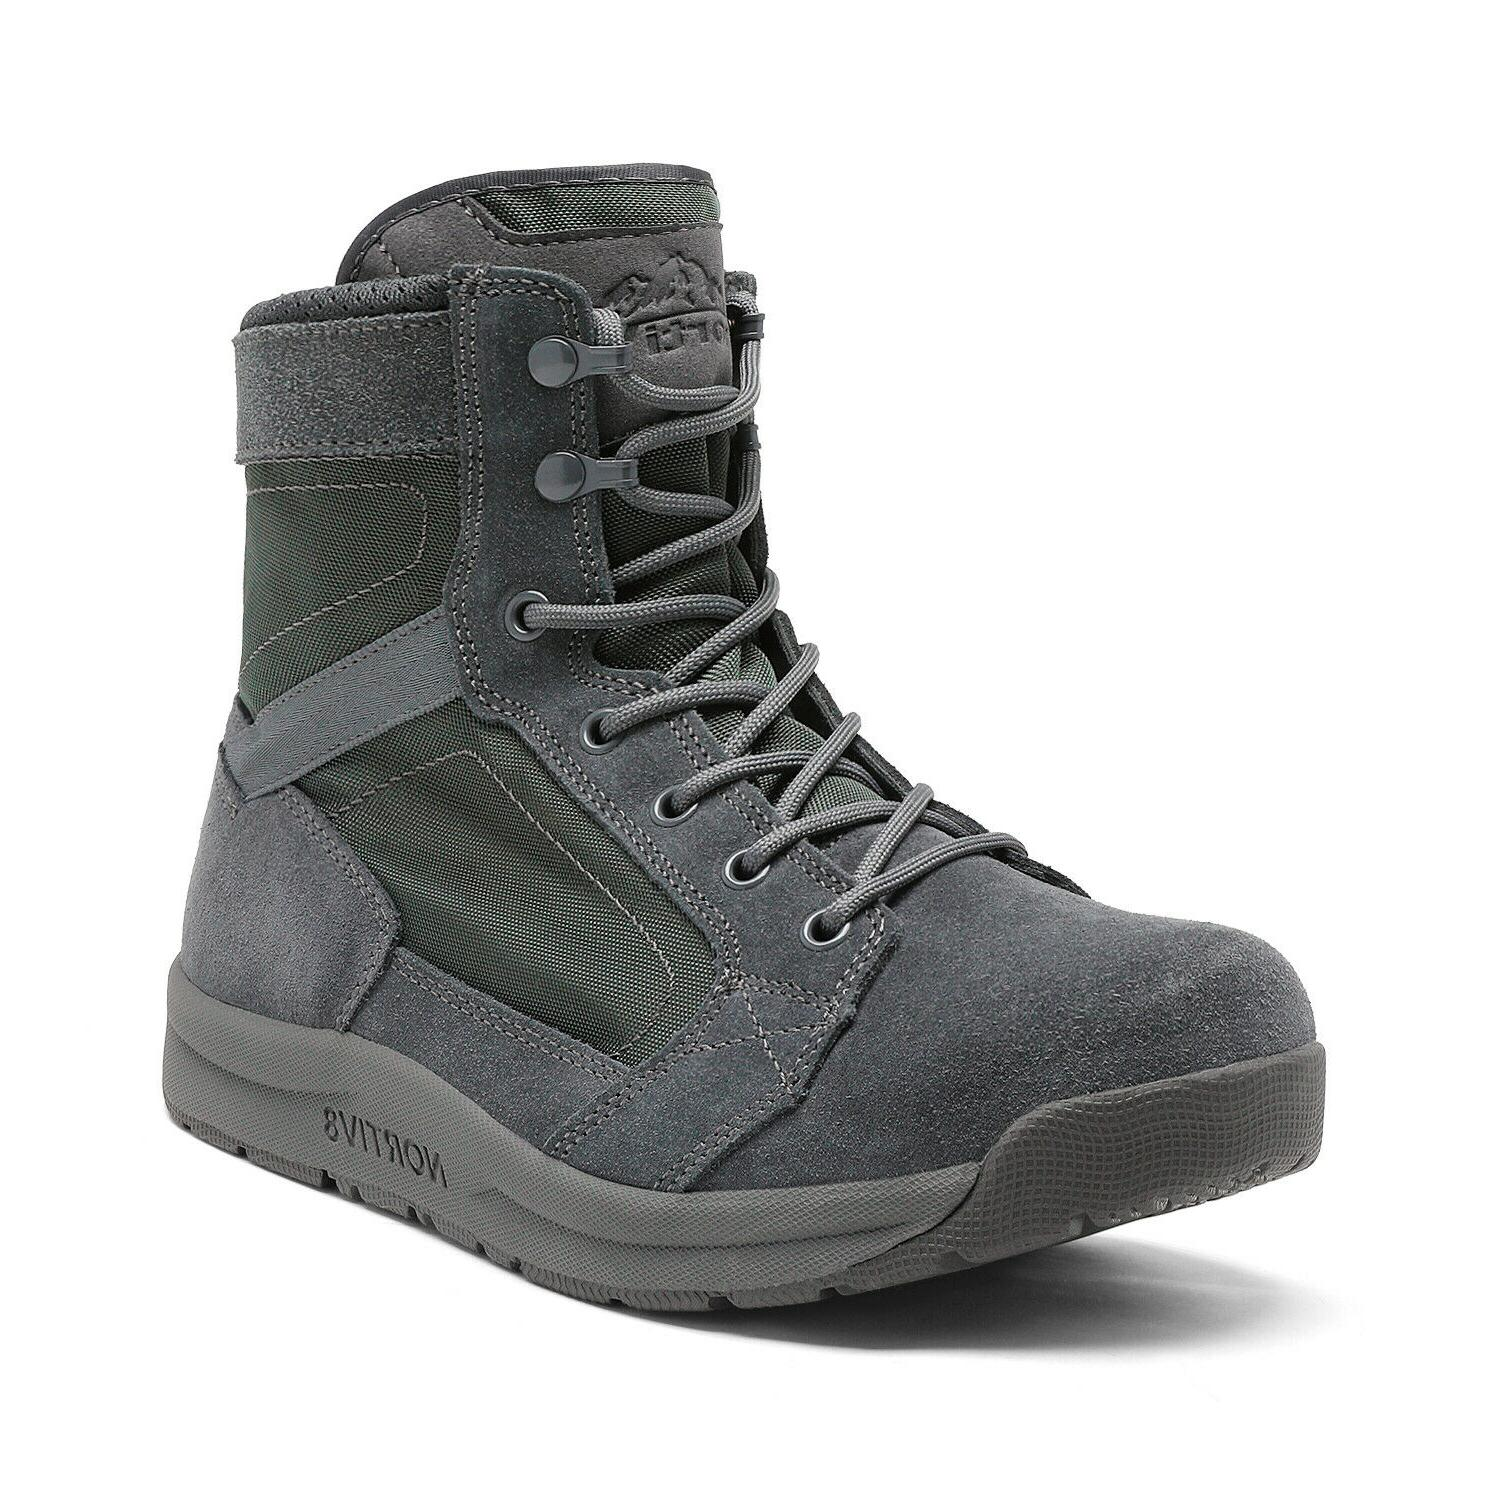 Mens Army Boots Lightweight Hiking Work